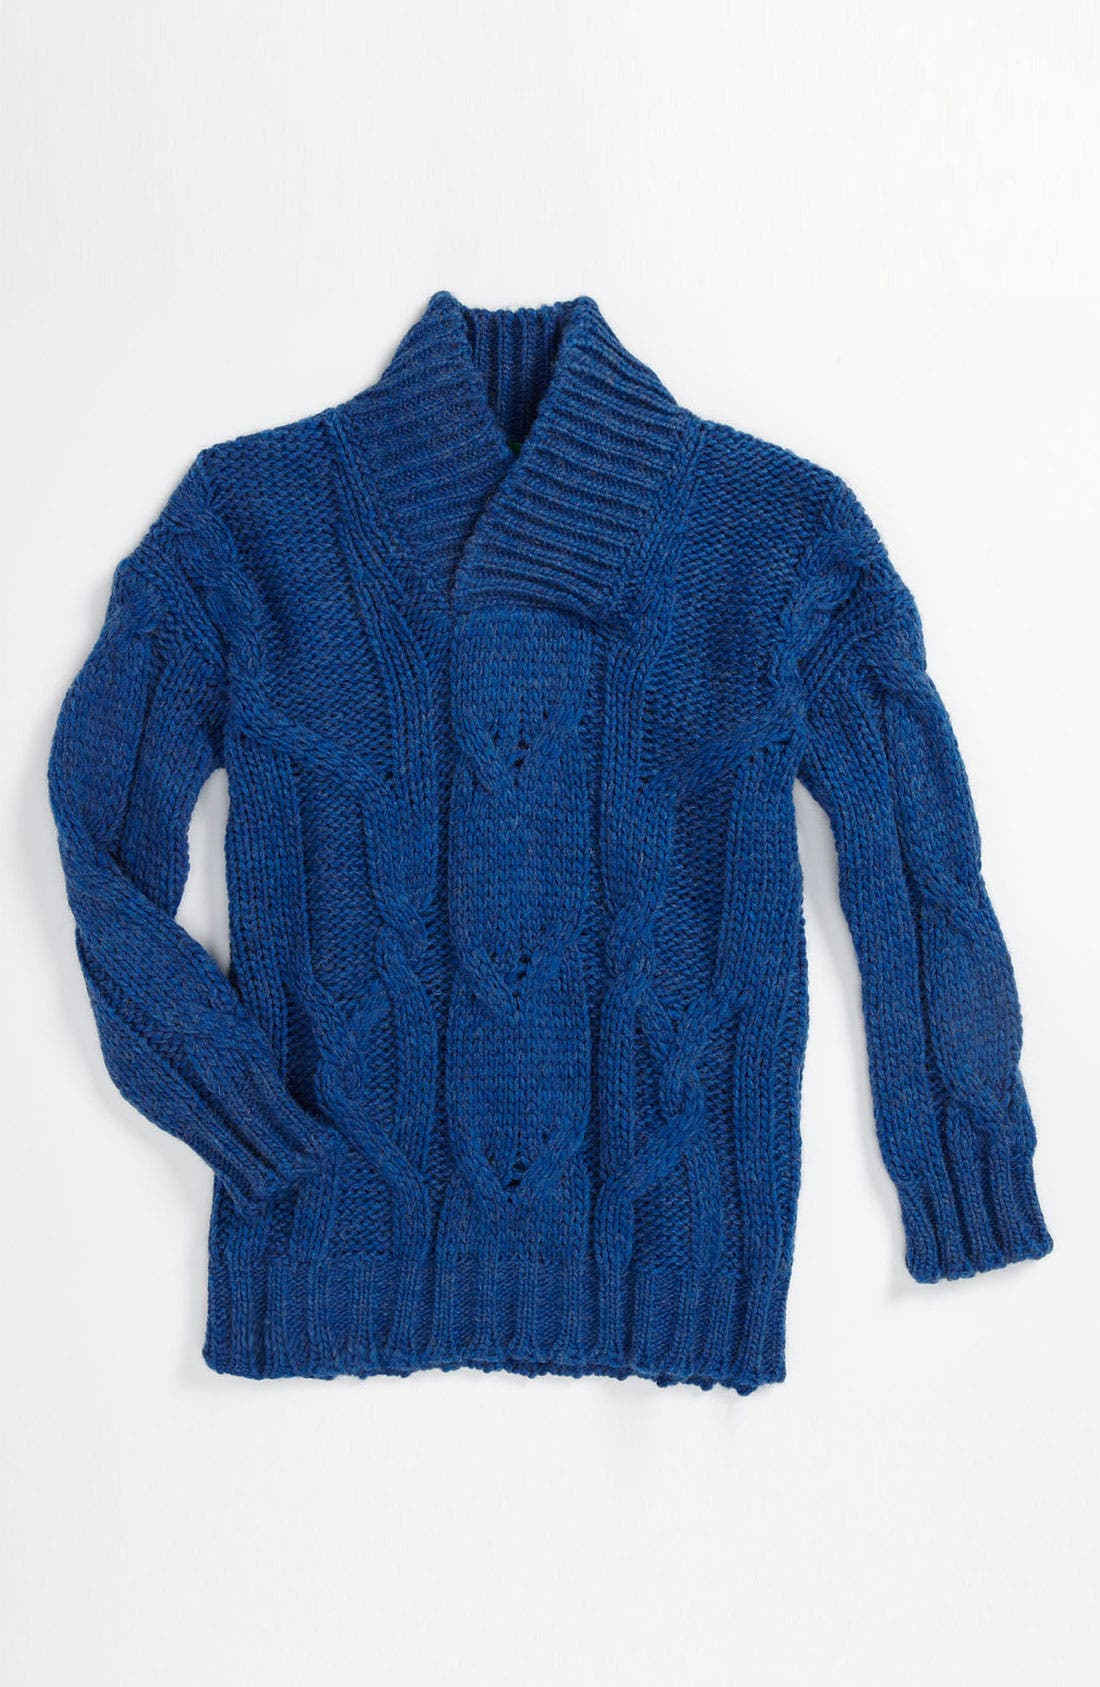 Main Image - United Colors of Benetton Kids Cable Knit Sweater (Little Boys & Big Boys)